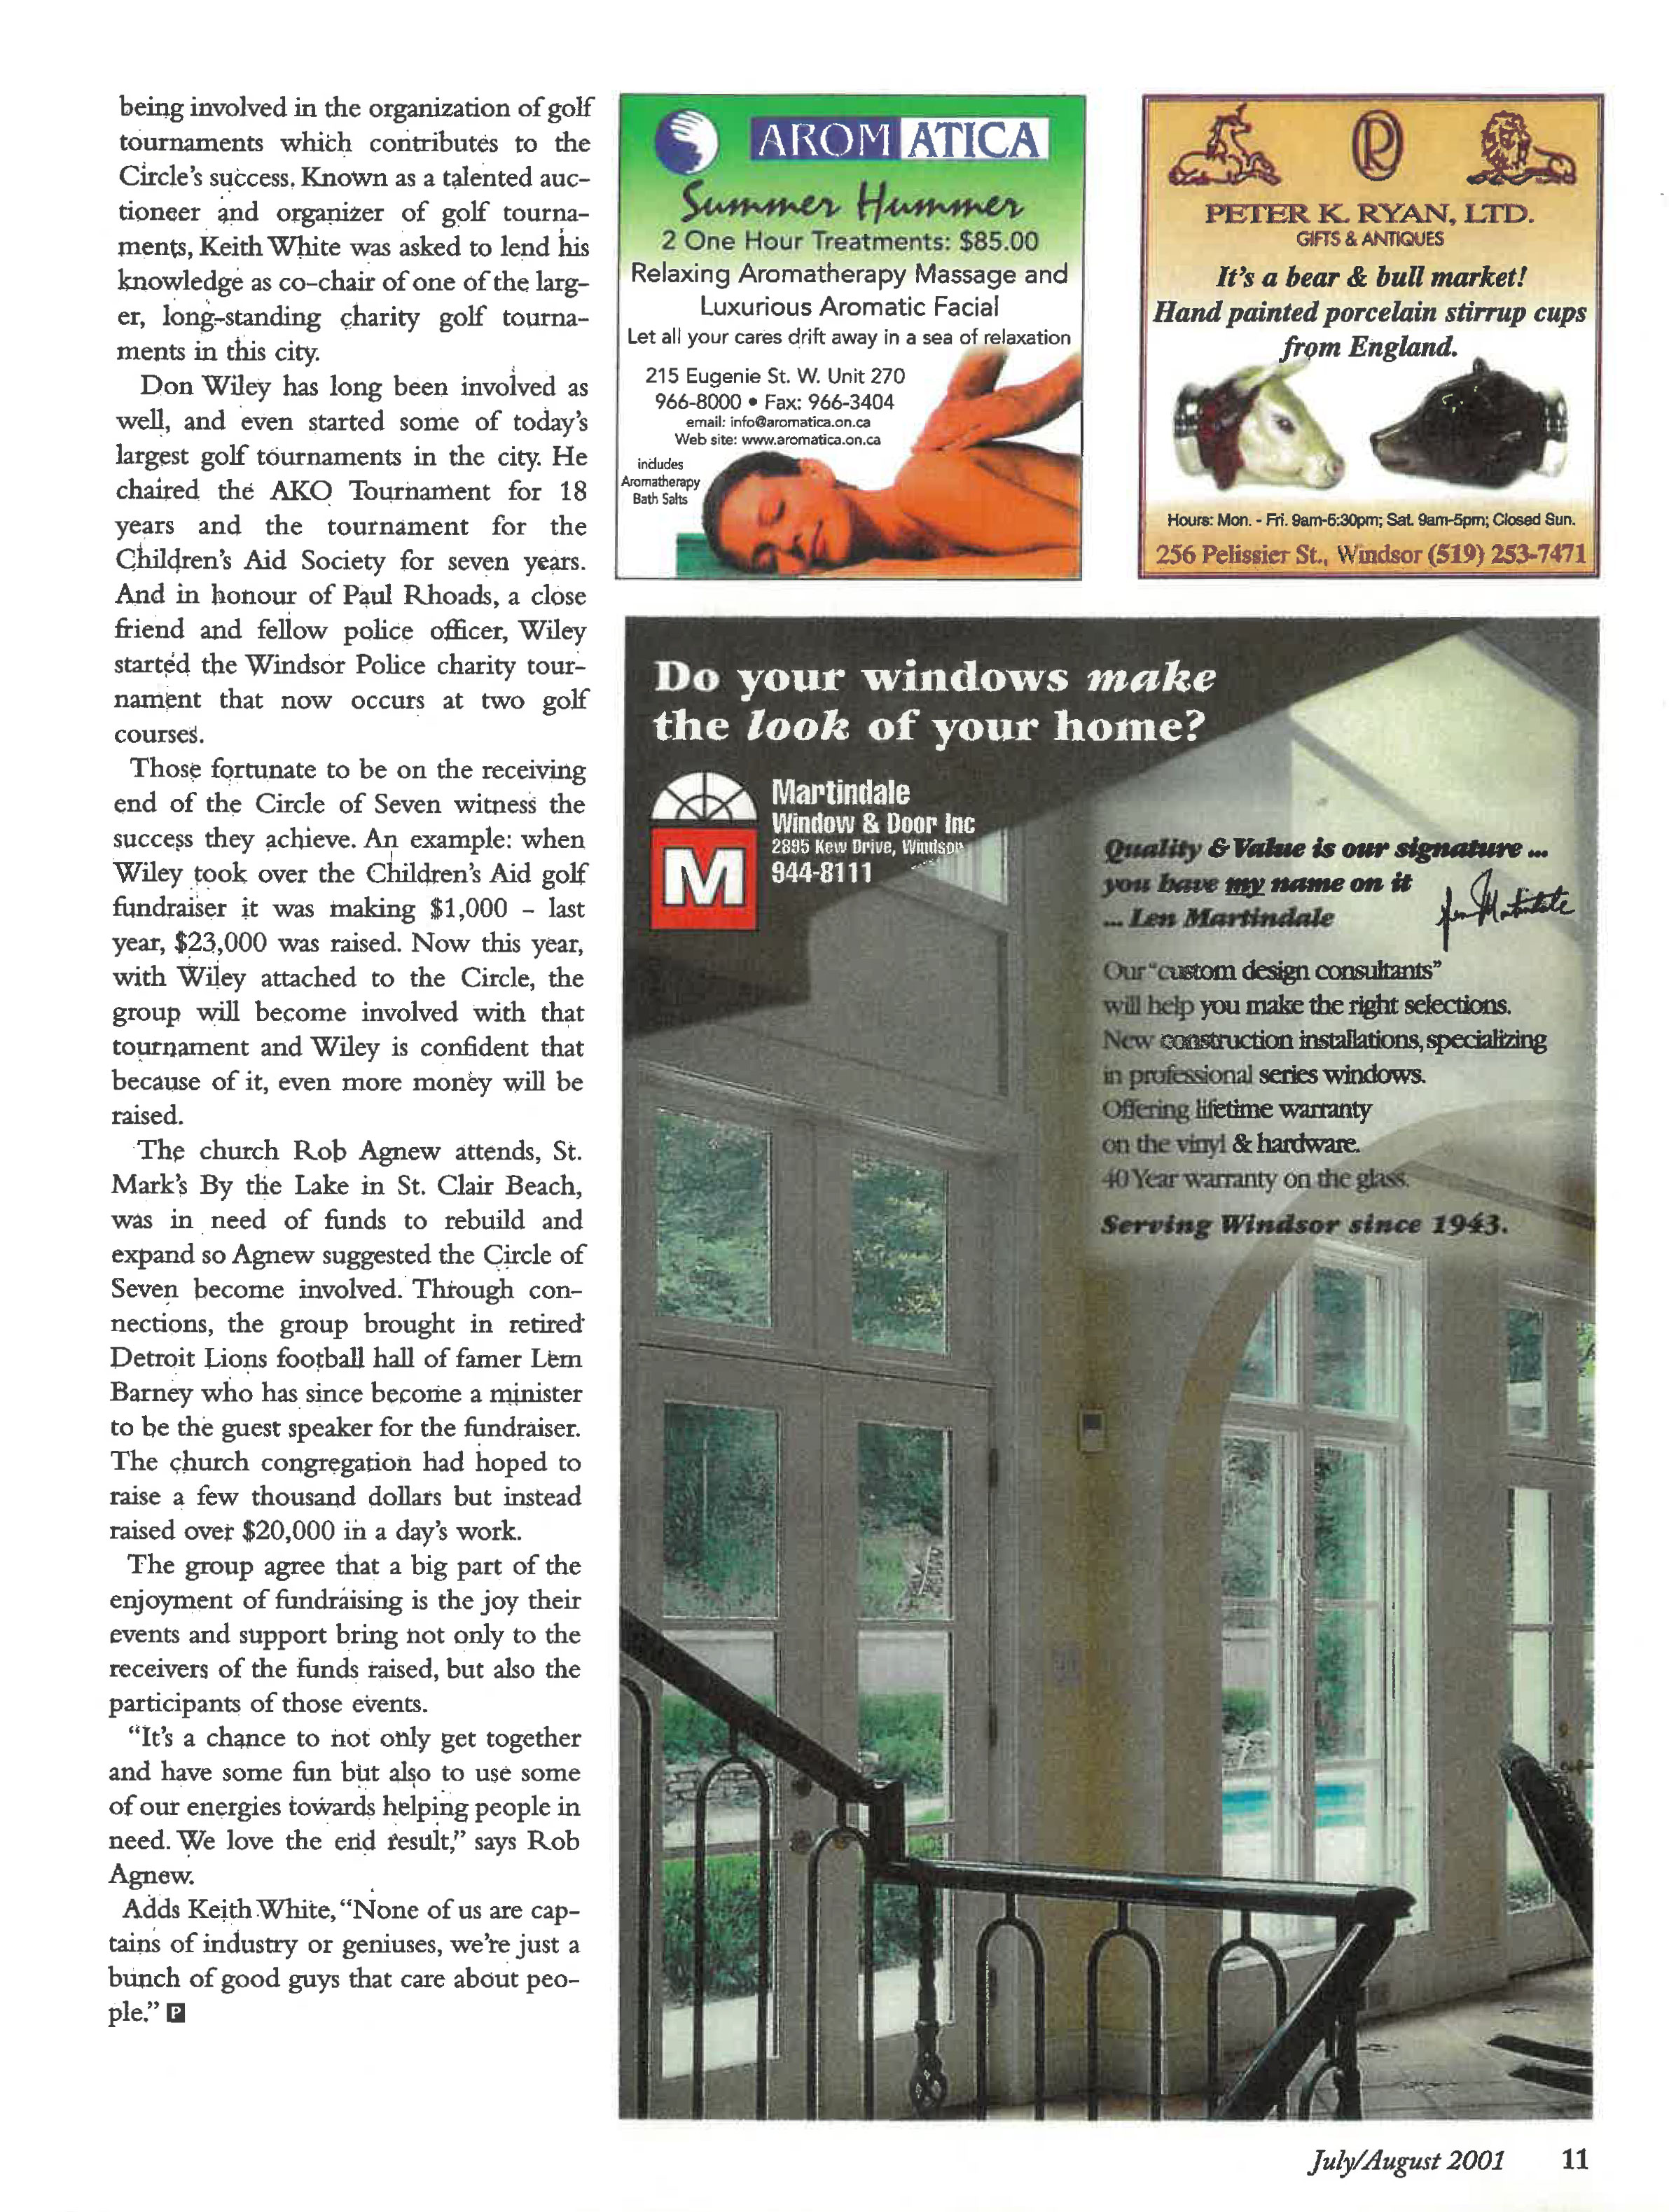 The magic of Seven Article page 4